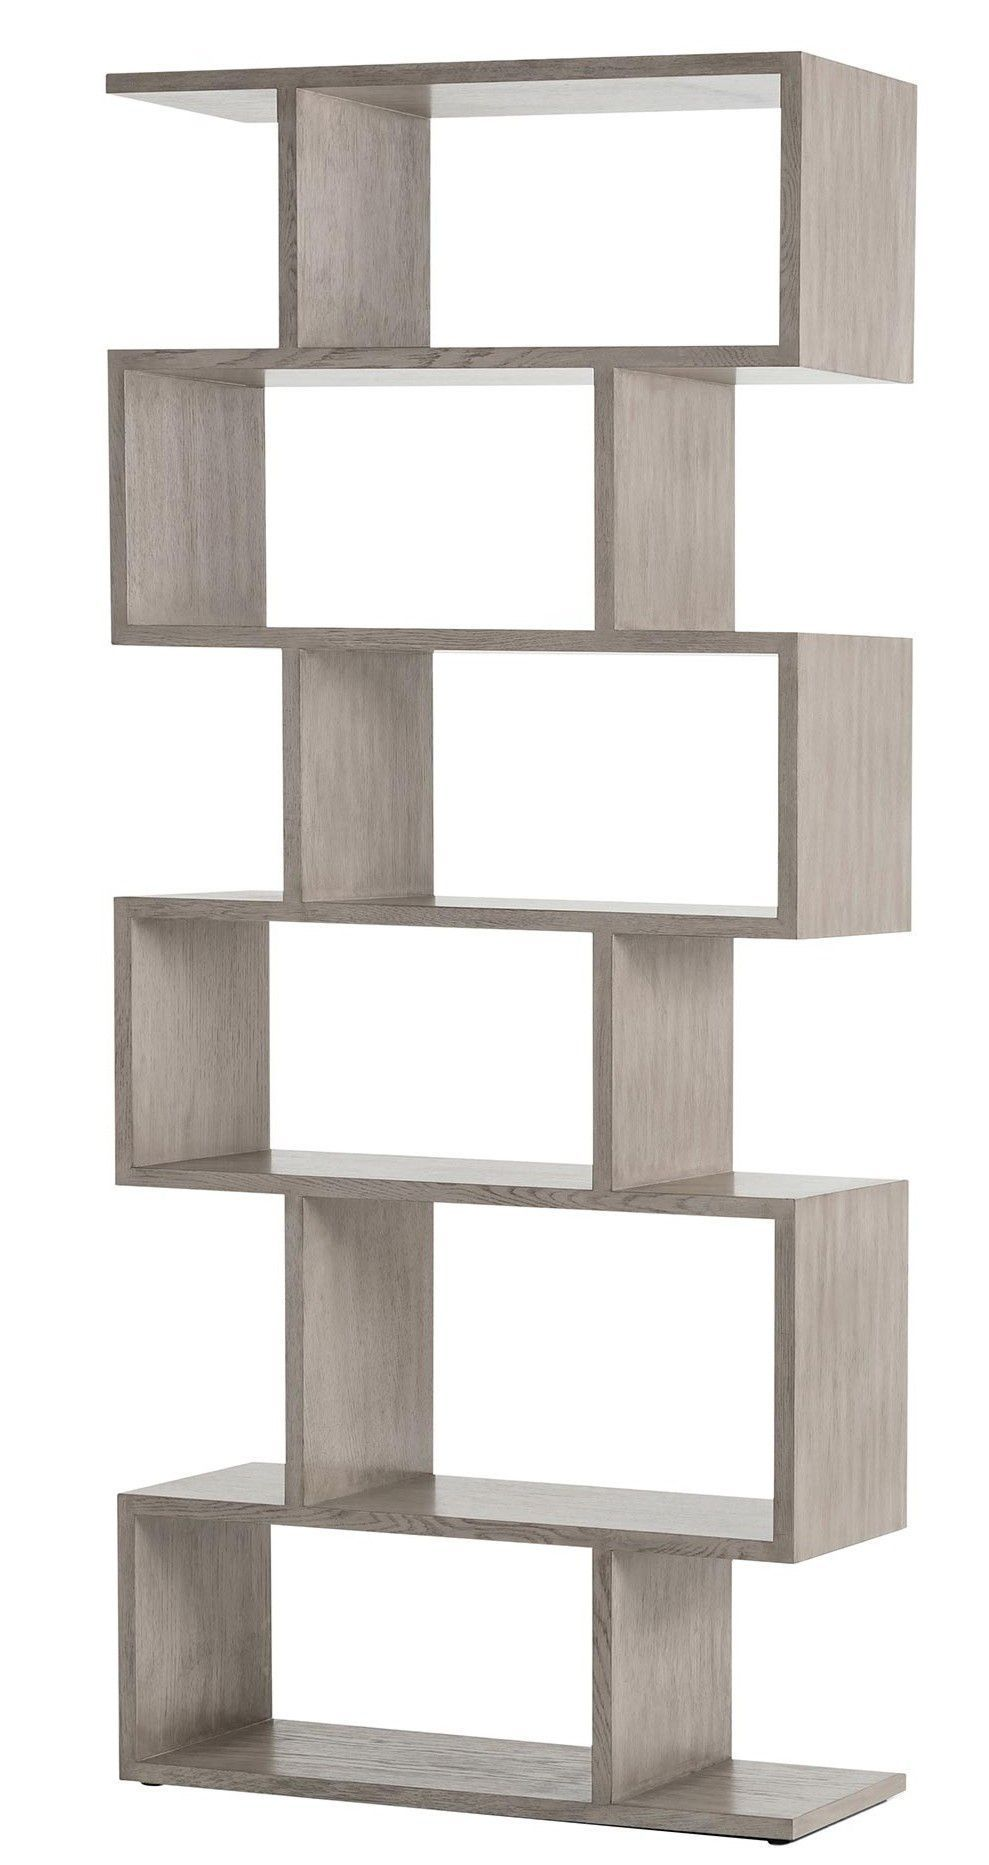 This Contemporary Wood Bookshelf Adds Instant Style Points To Any Room Thanks To A Bold Geom Contemporary Decor Living Room Contemporary Decor Wood Bookshelves